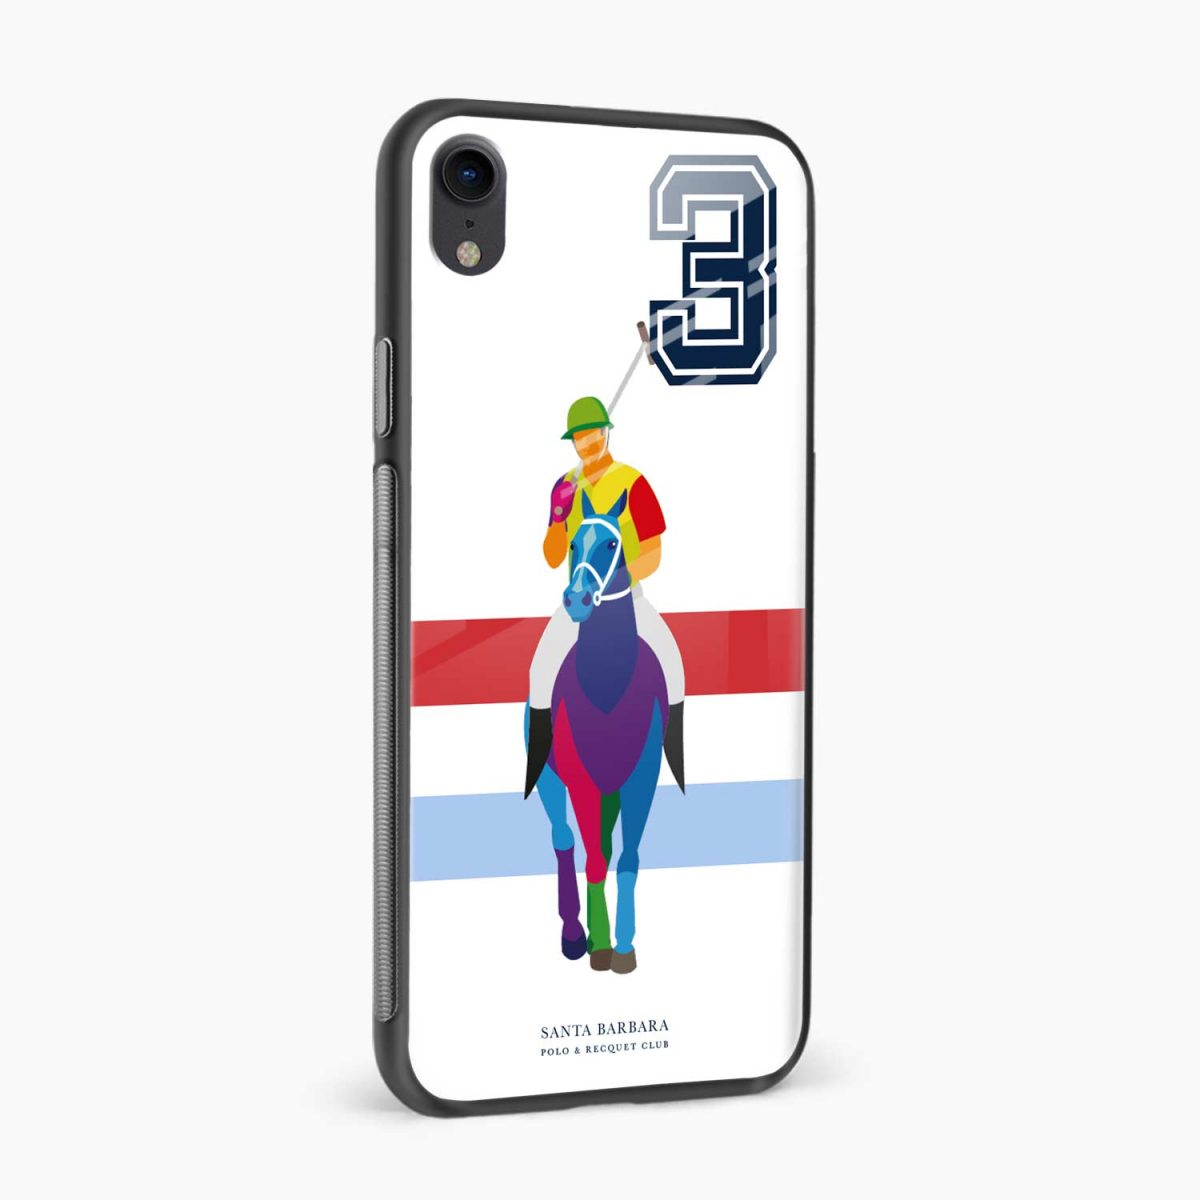 multicolor sant barbara polo apple iphone xr back cover side view